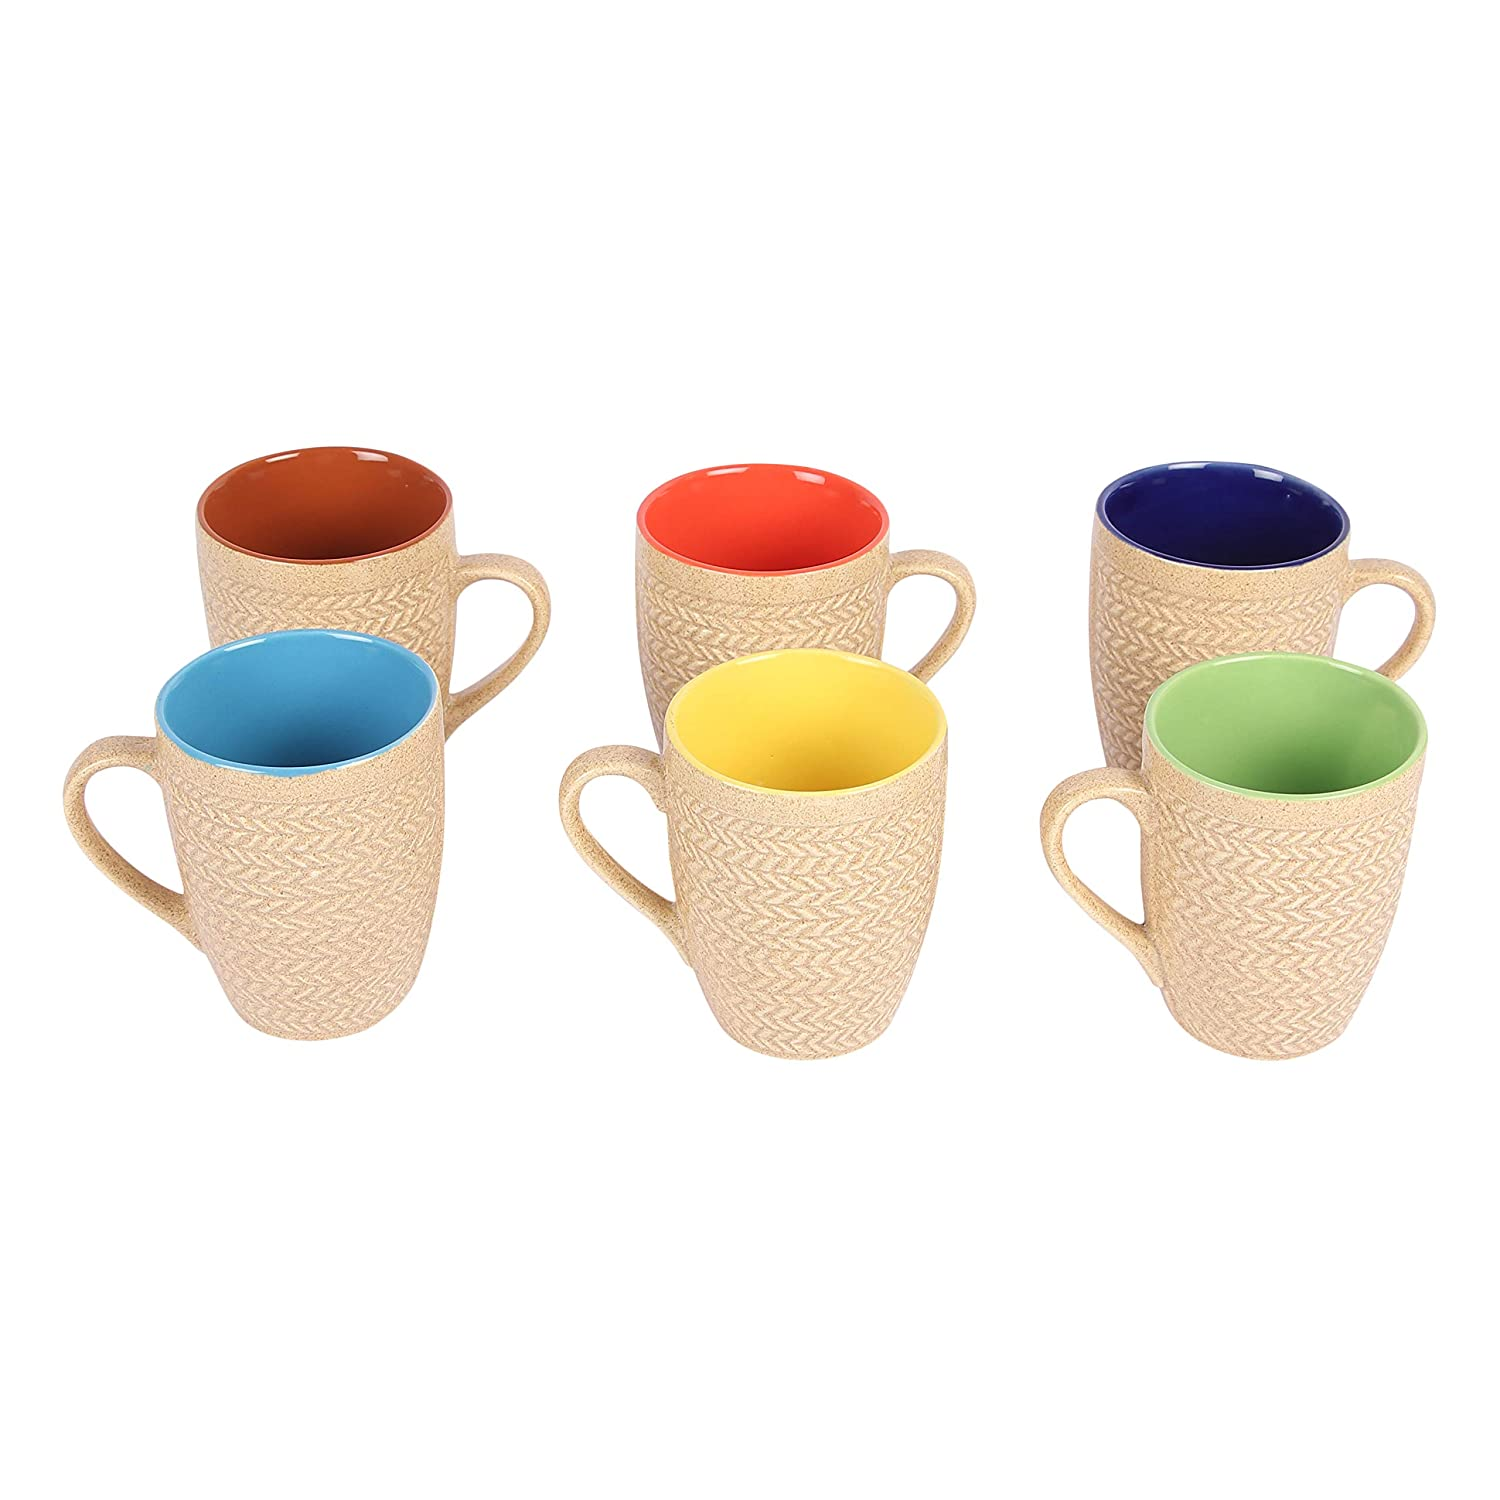 Ceramic Coffee Mugs – 6 Pieces